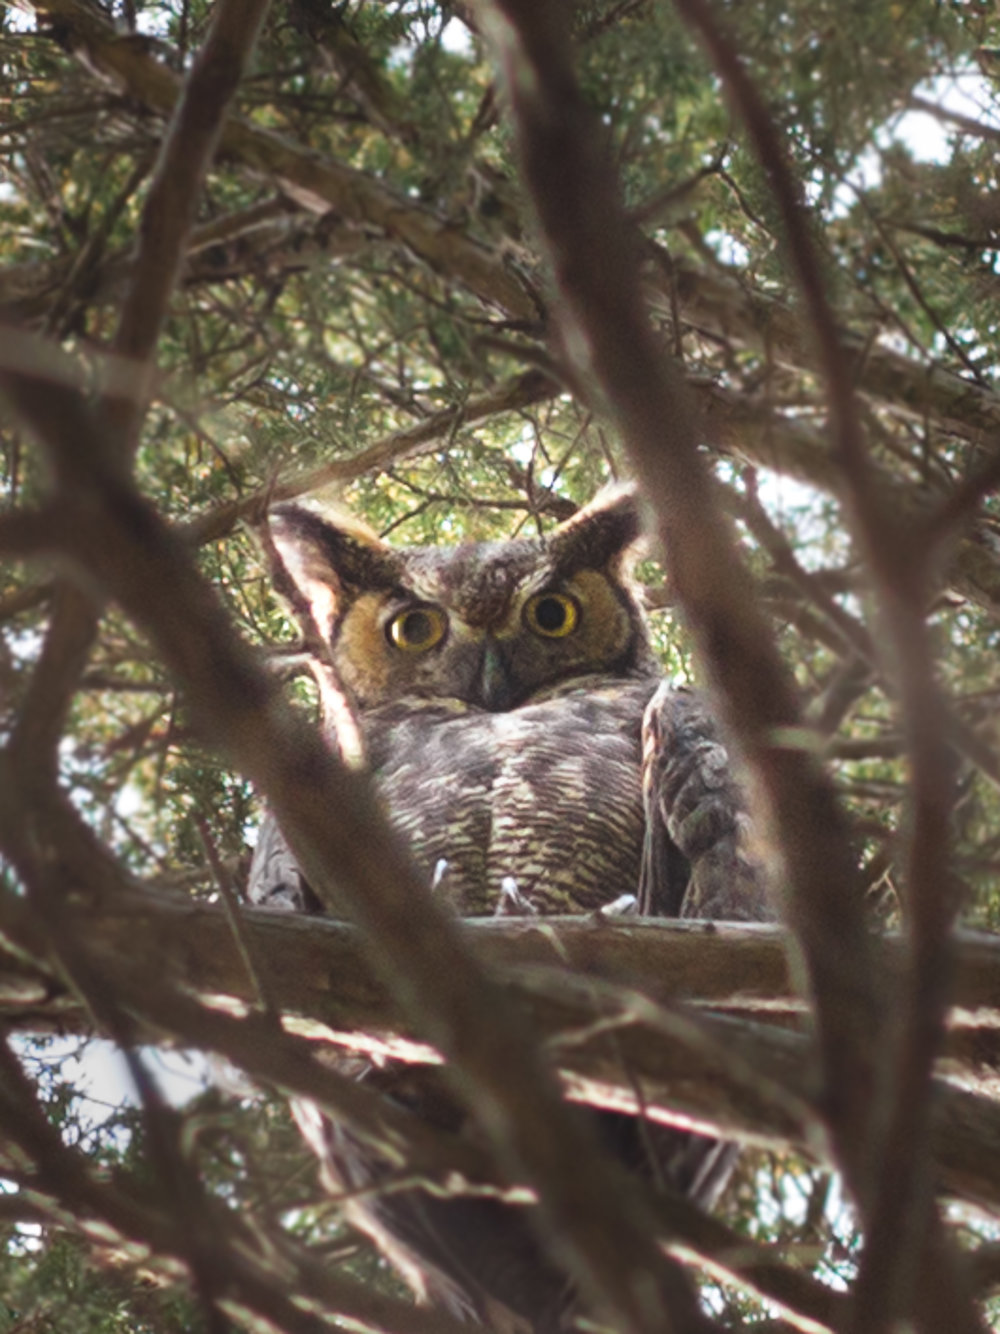 Athena, a great-horned owl looks down from her perch, not far from her nest, high up in the trees at Prairie School.